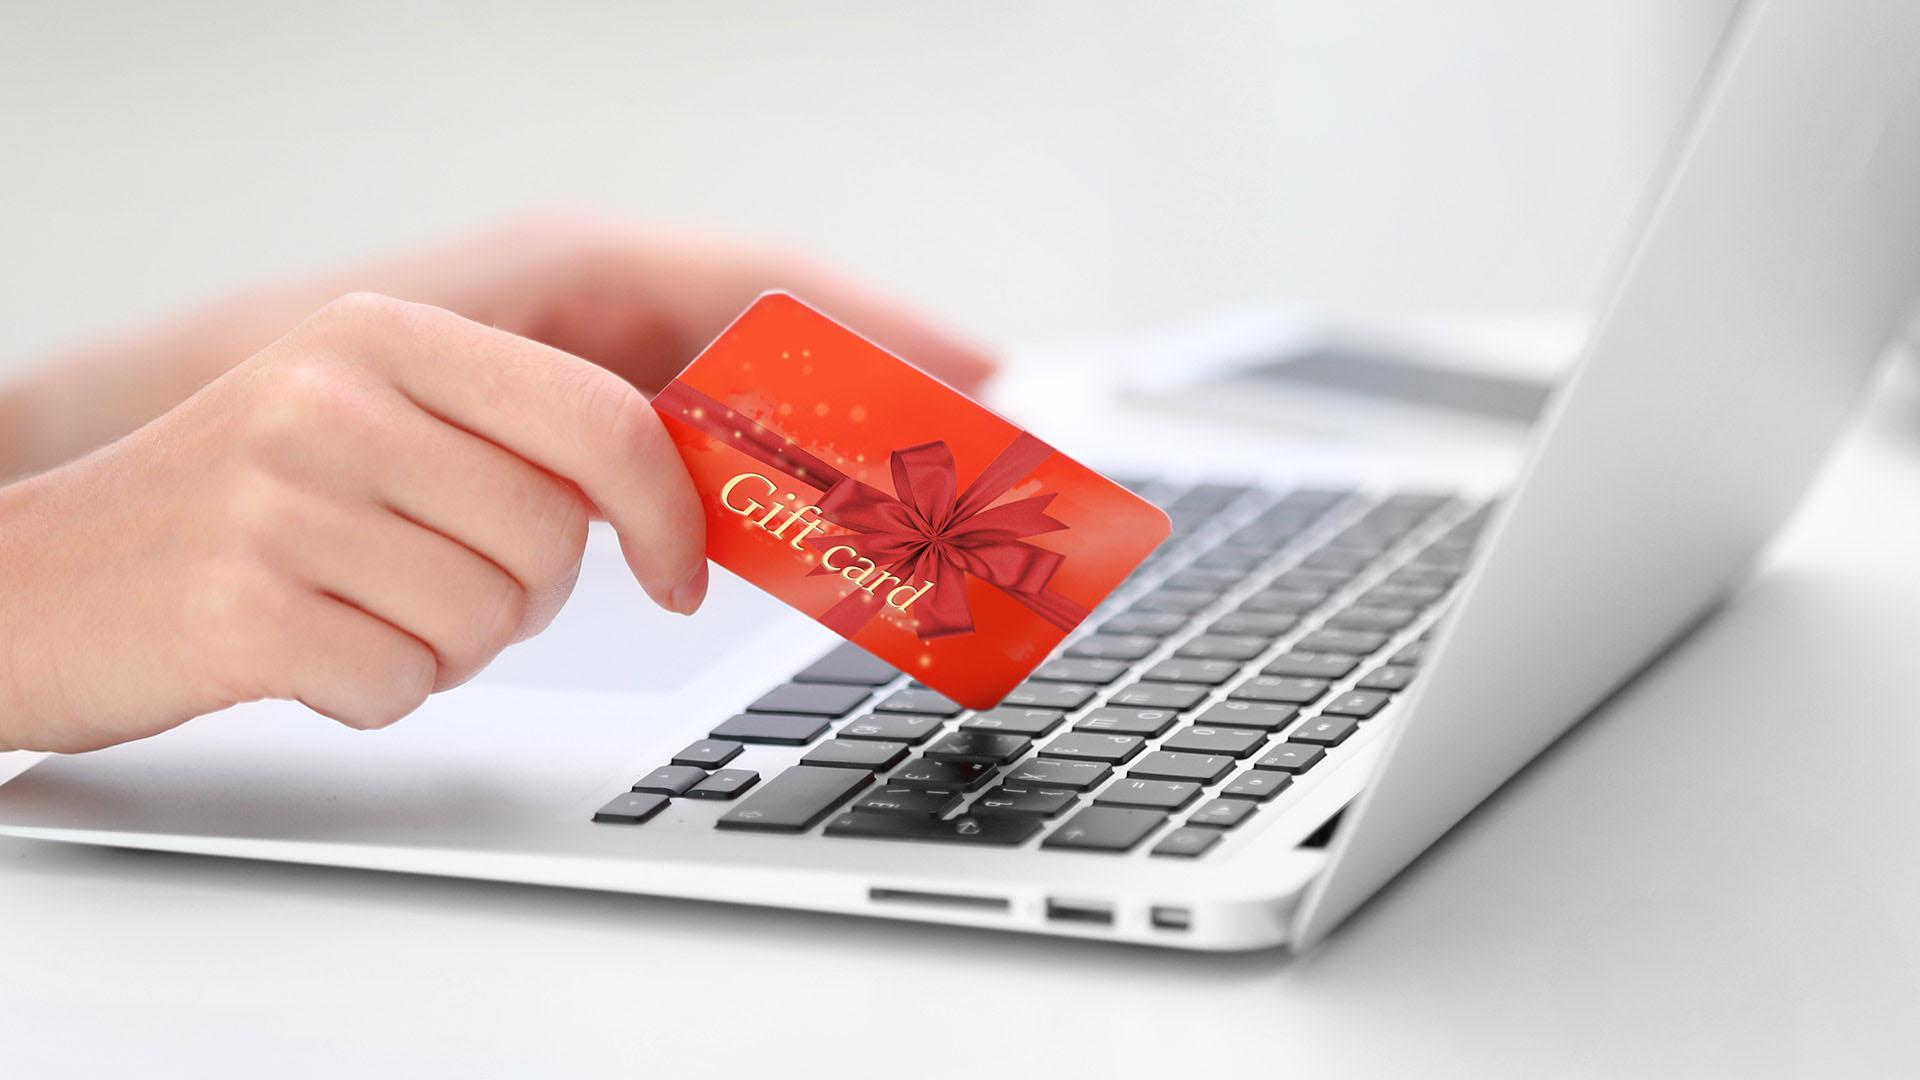 Where to Sell Gift Cards Online for Cash